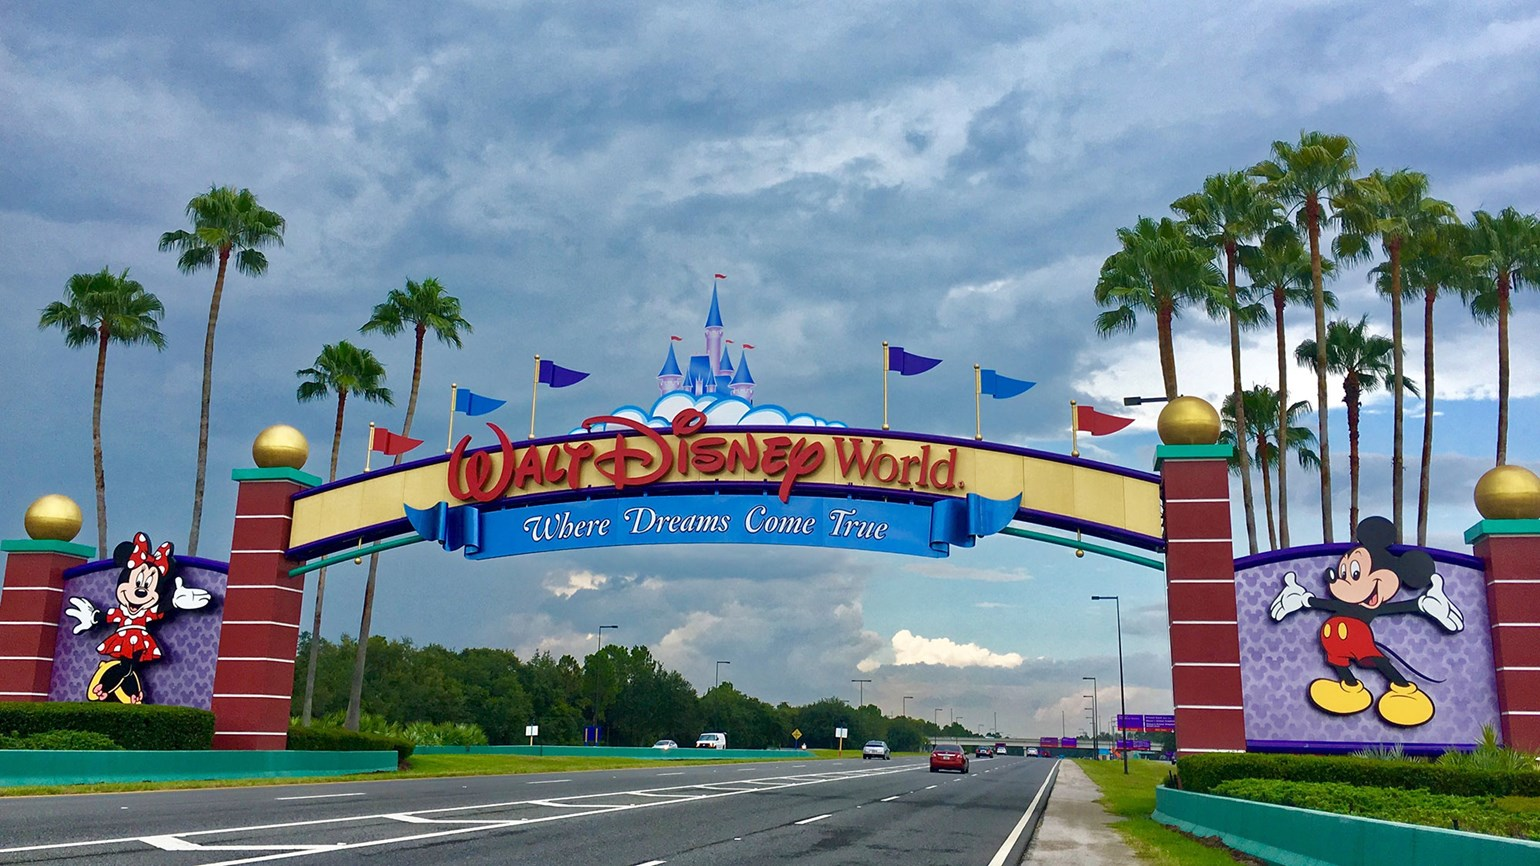 Disney World [Credit: Jerome Labouyrie/Shutterstock.com]